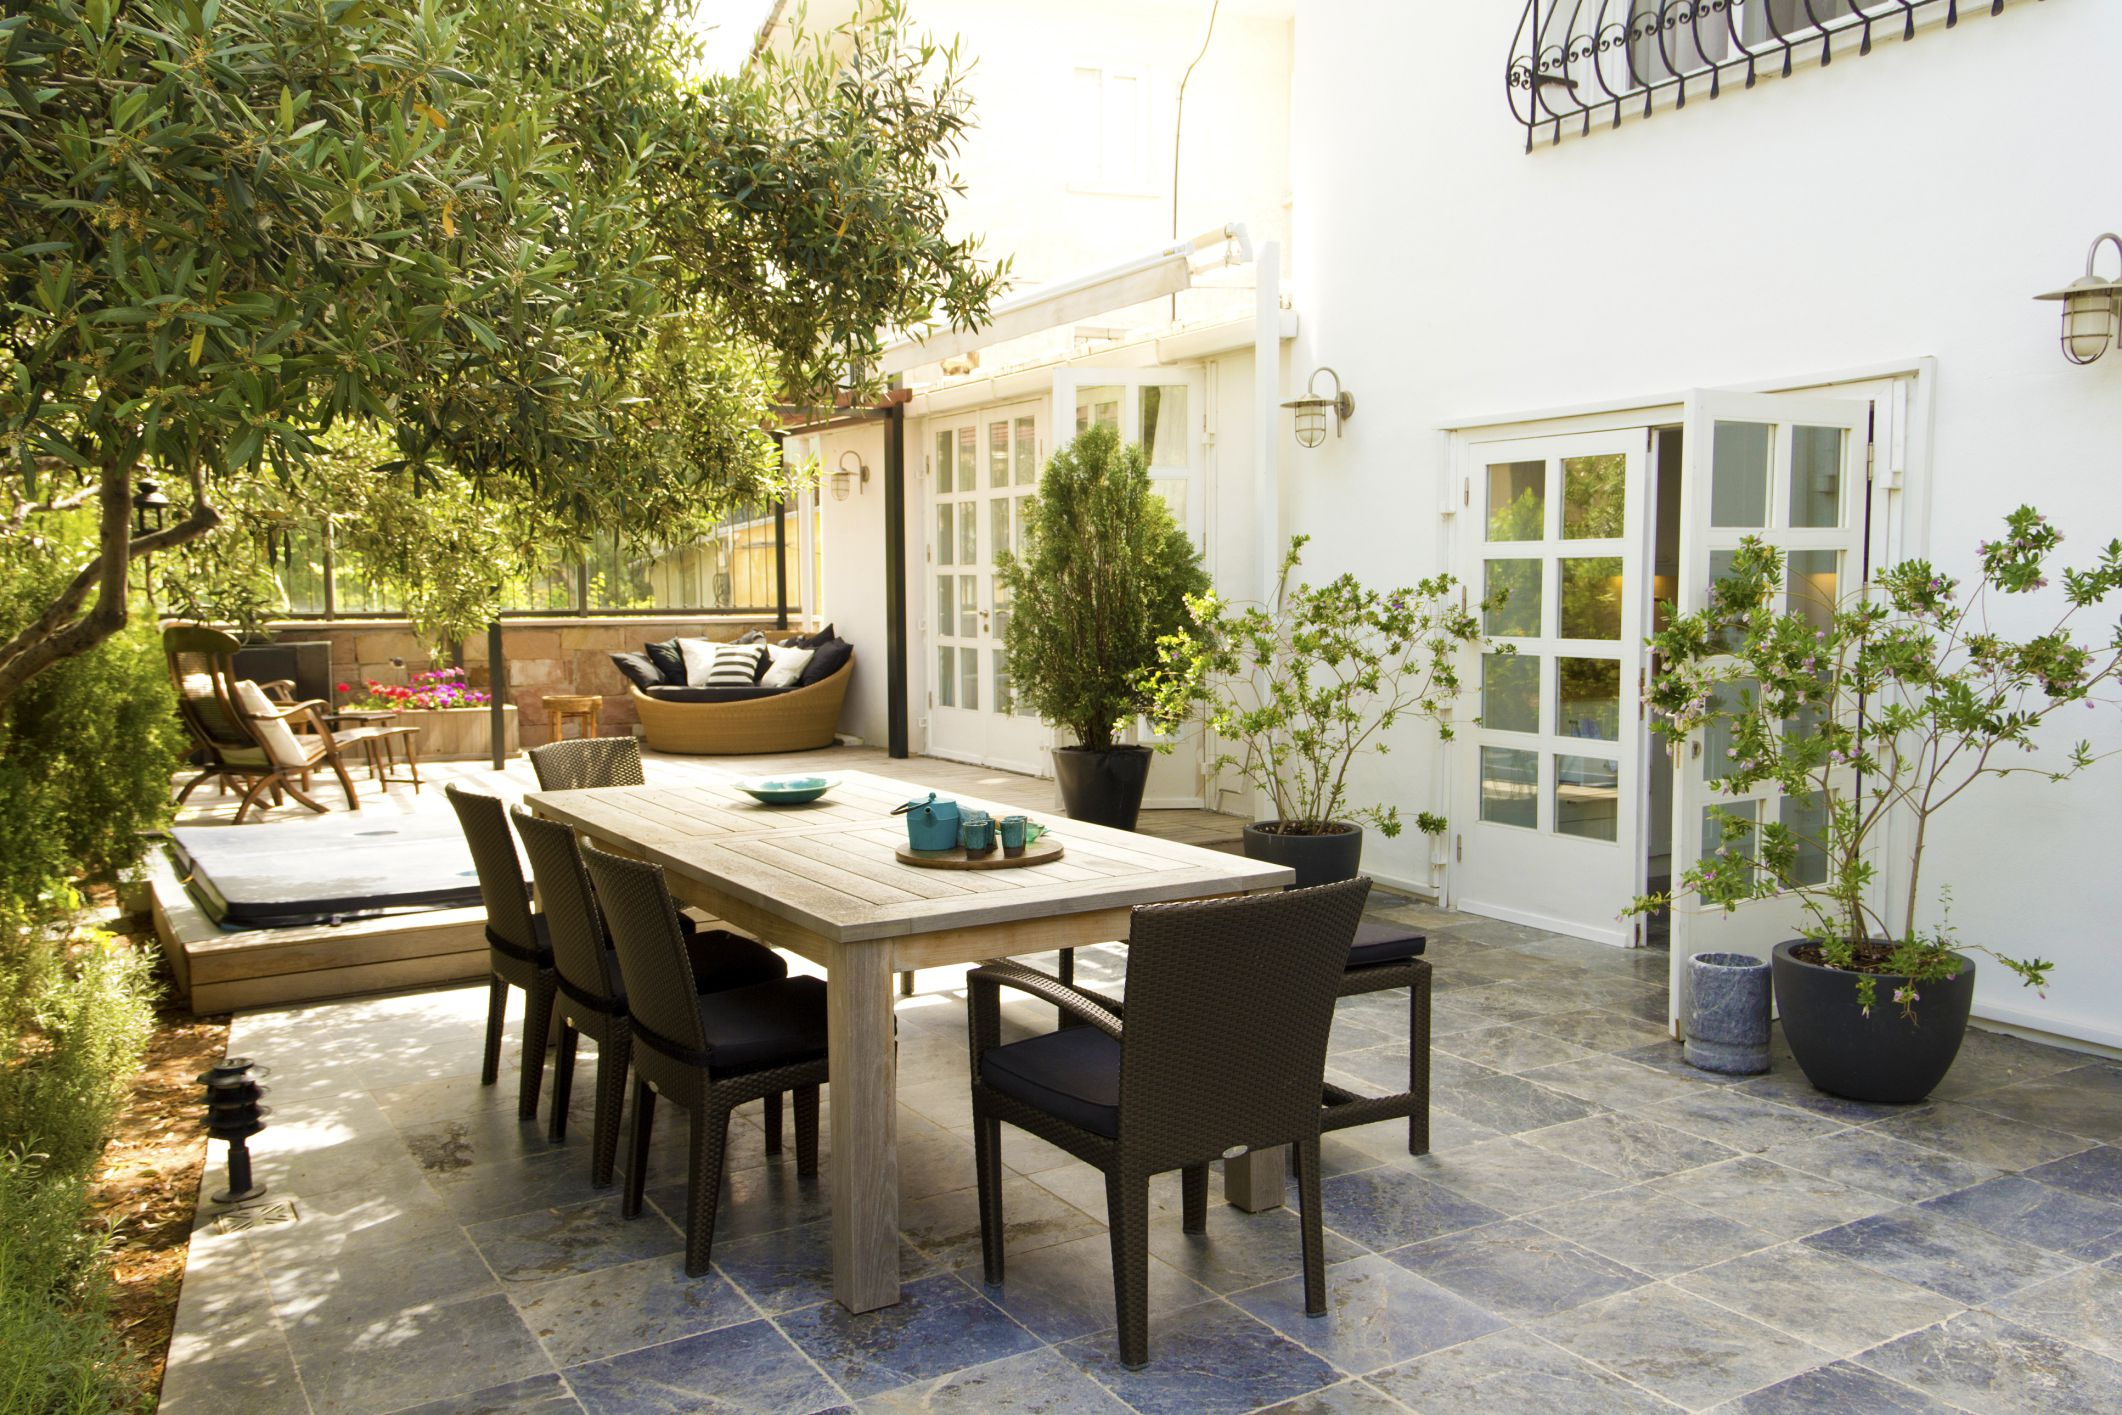 patio landscaping 10 ideas to improve your outdoor space